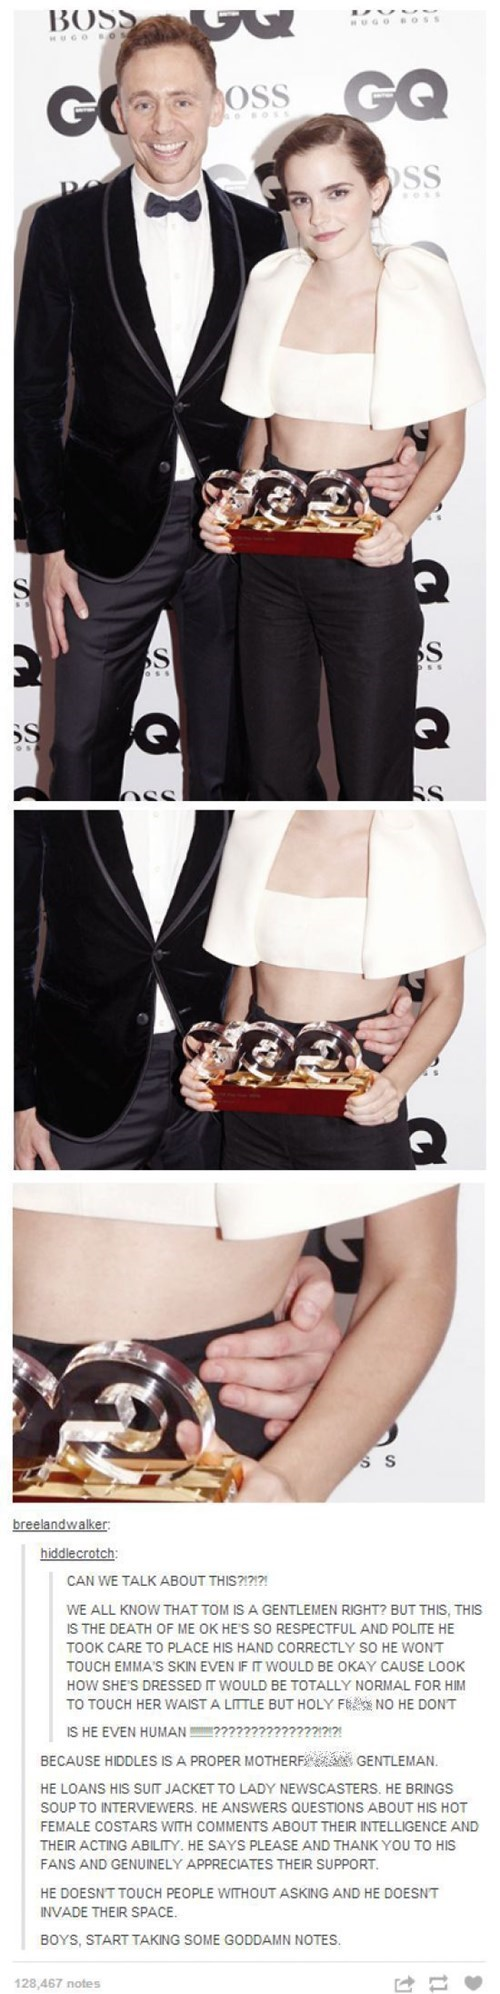 Let it Never be Said that Hiddleston Isn't a Perfect Gentleman